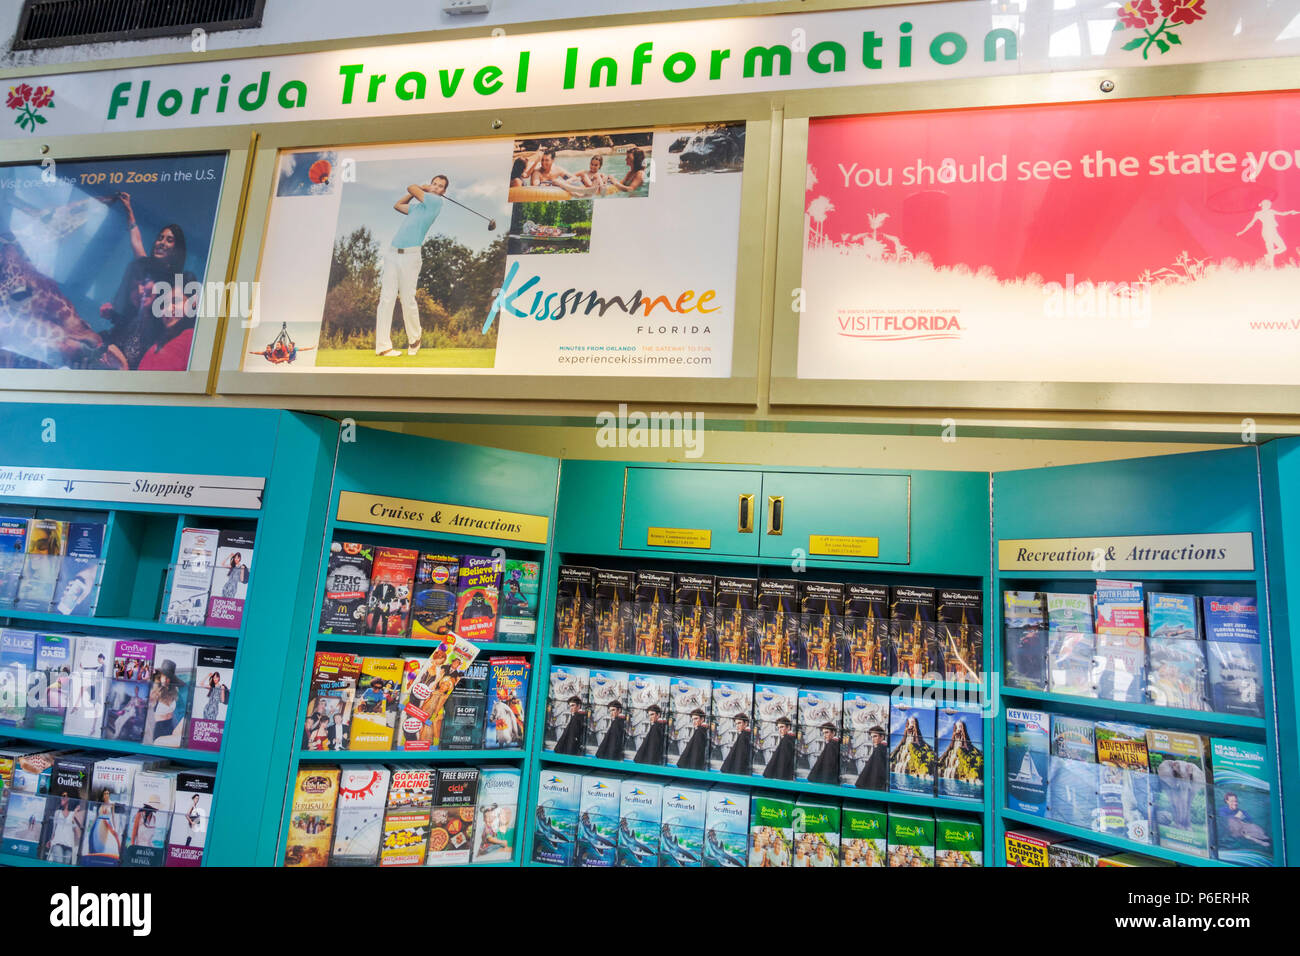 Fort Ft. Pierce Florida Florida Turnpike toll road rest stop travel information brochures attractions free - Stock Image